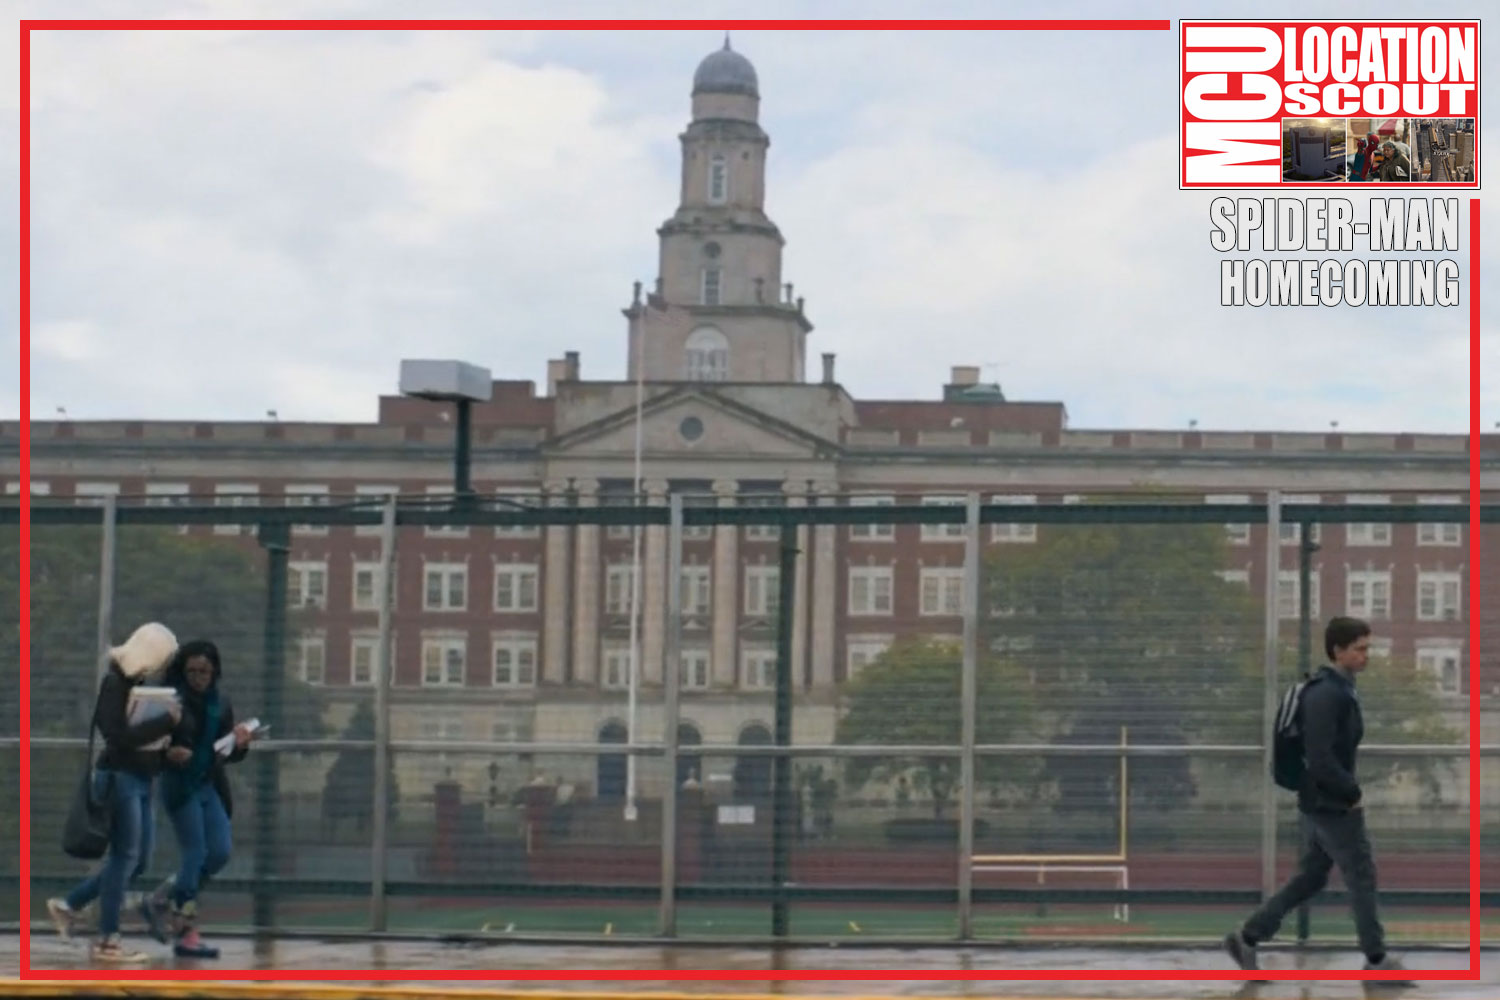 MCU: Location Scout | Midtown High School | RetroZap